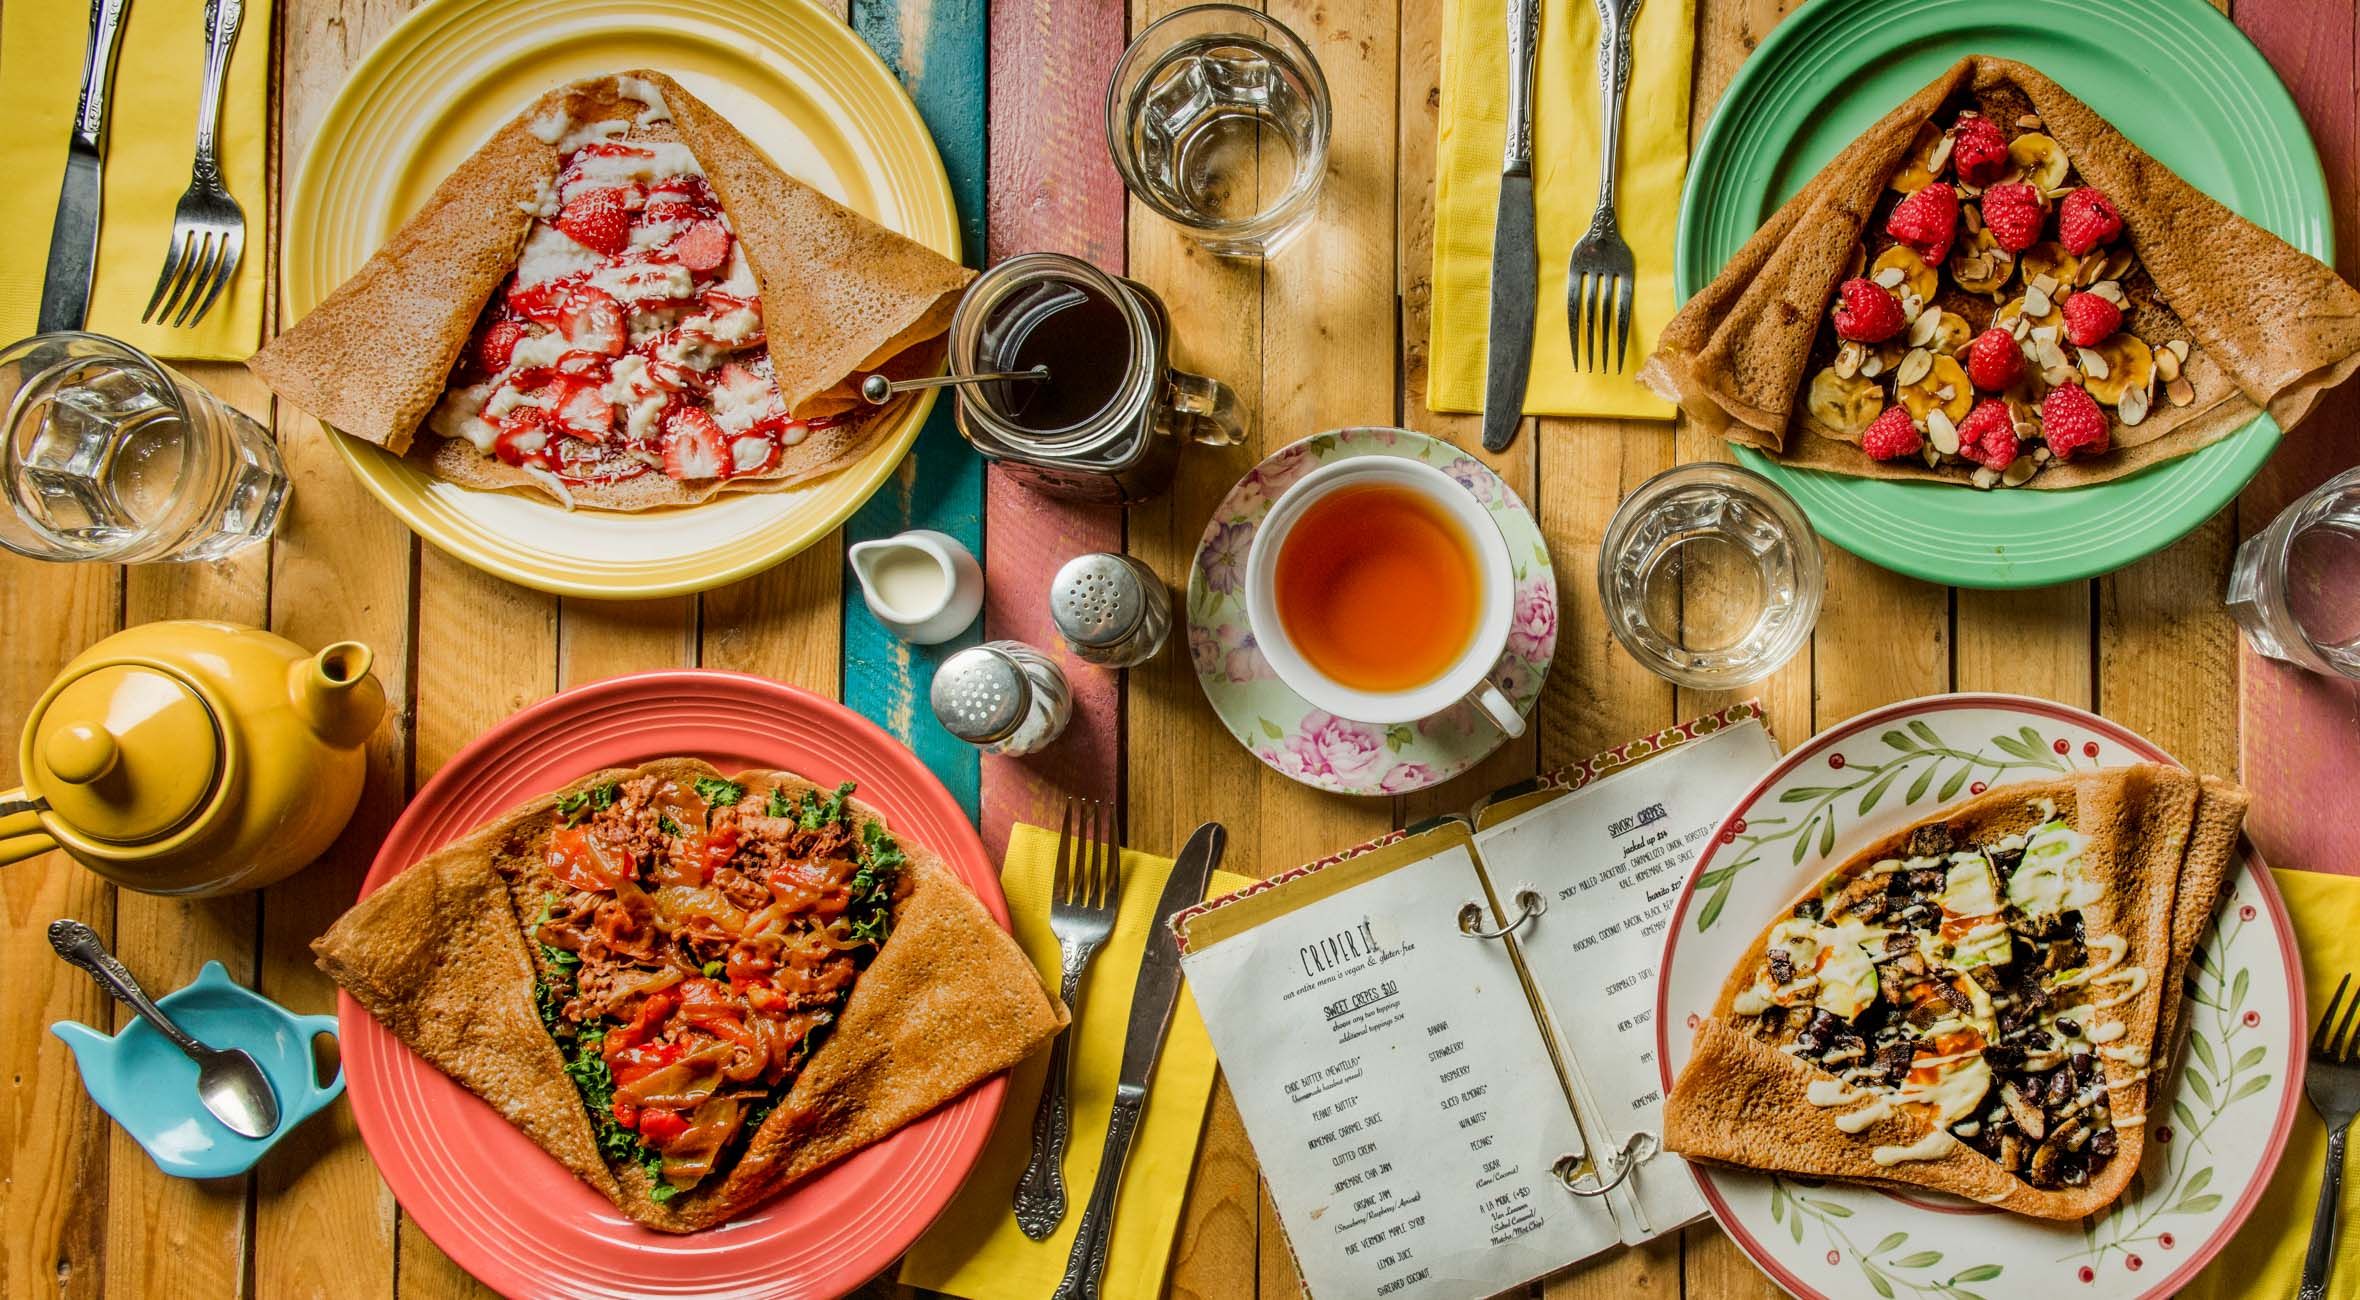 Crepes and Drinks for 2 persons at Little Choc Apothecary – Taste the Delicious Sweet and Savory Crepes in Williamsburg